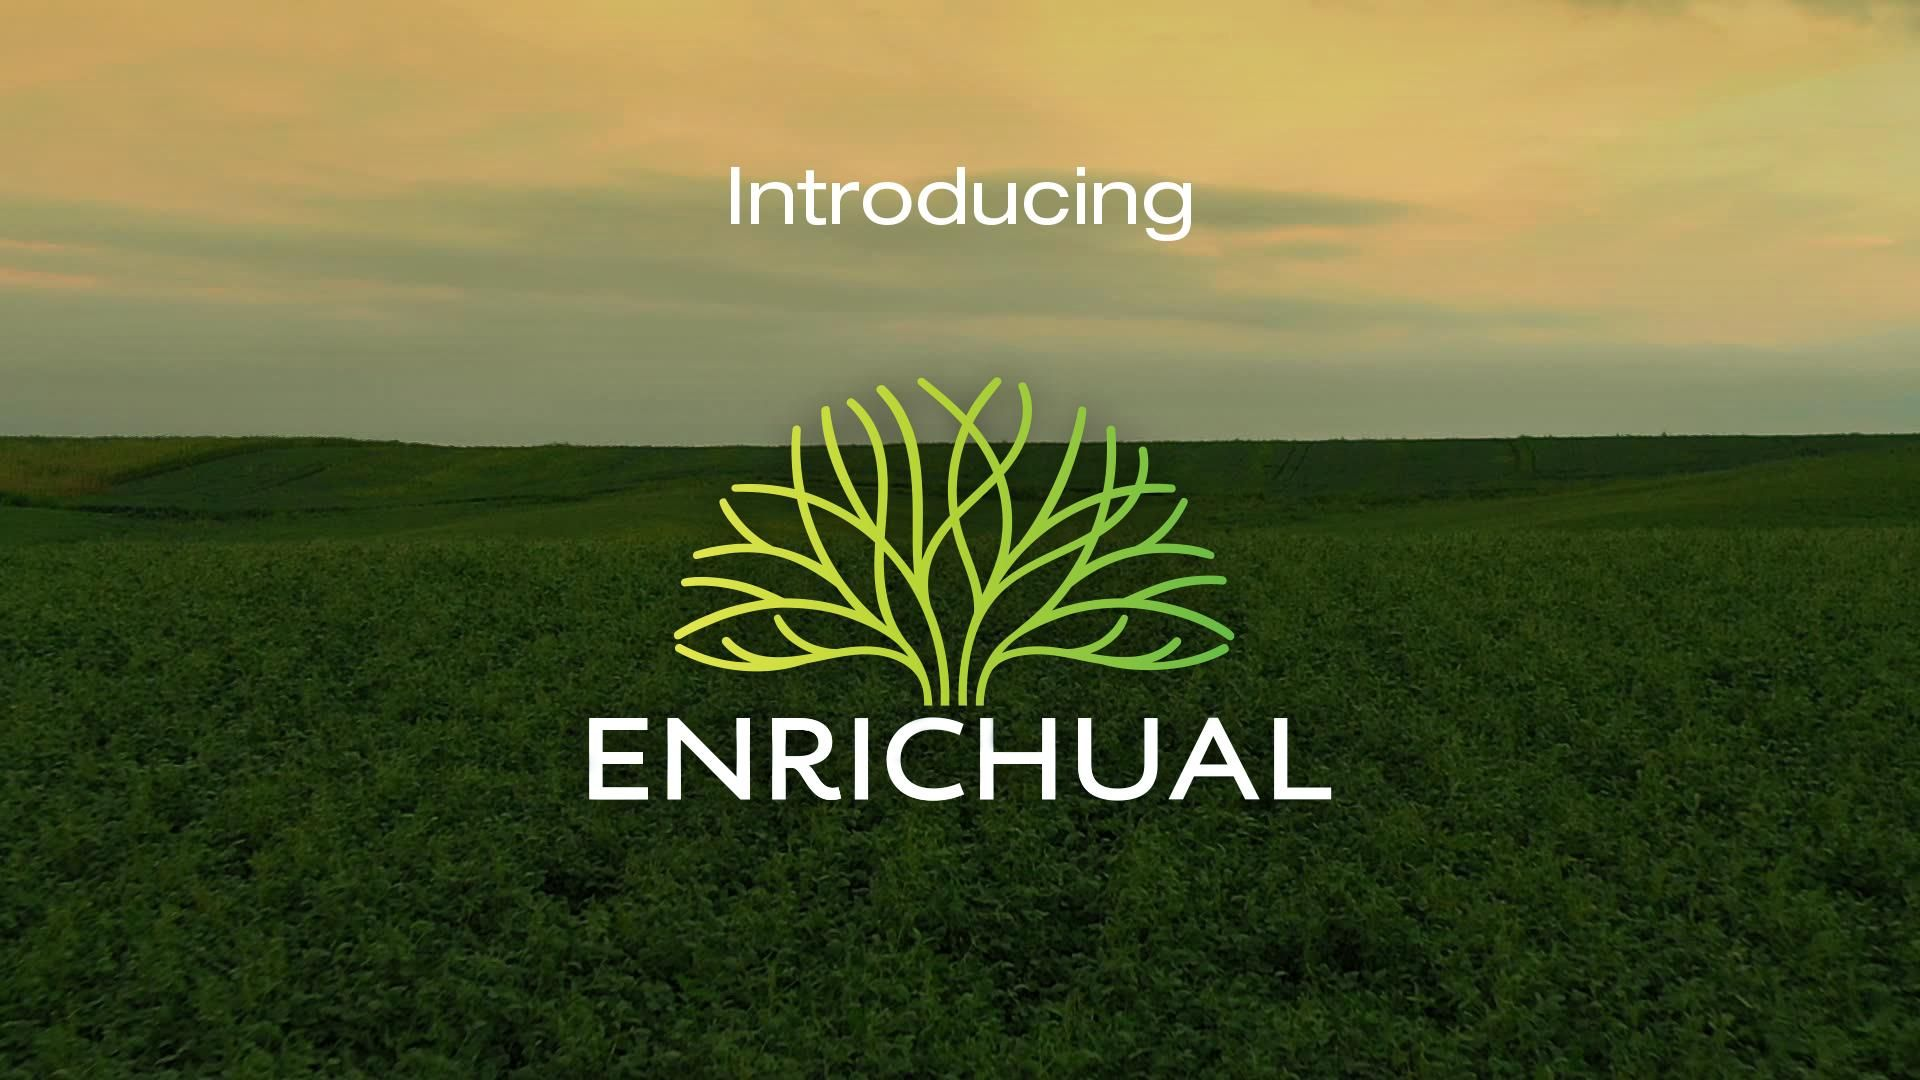 Introducing Enrichual